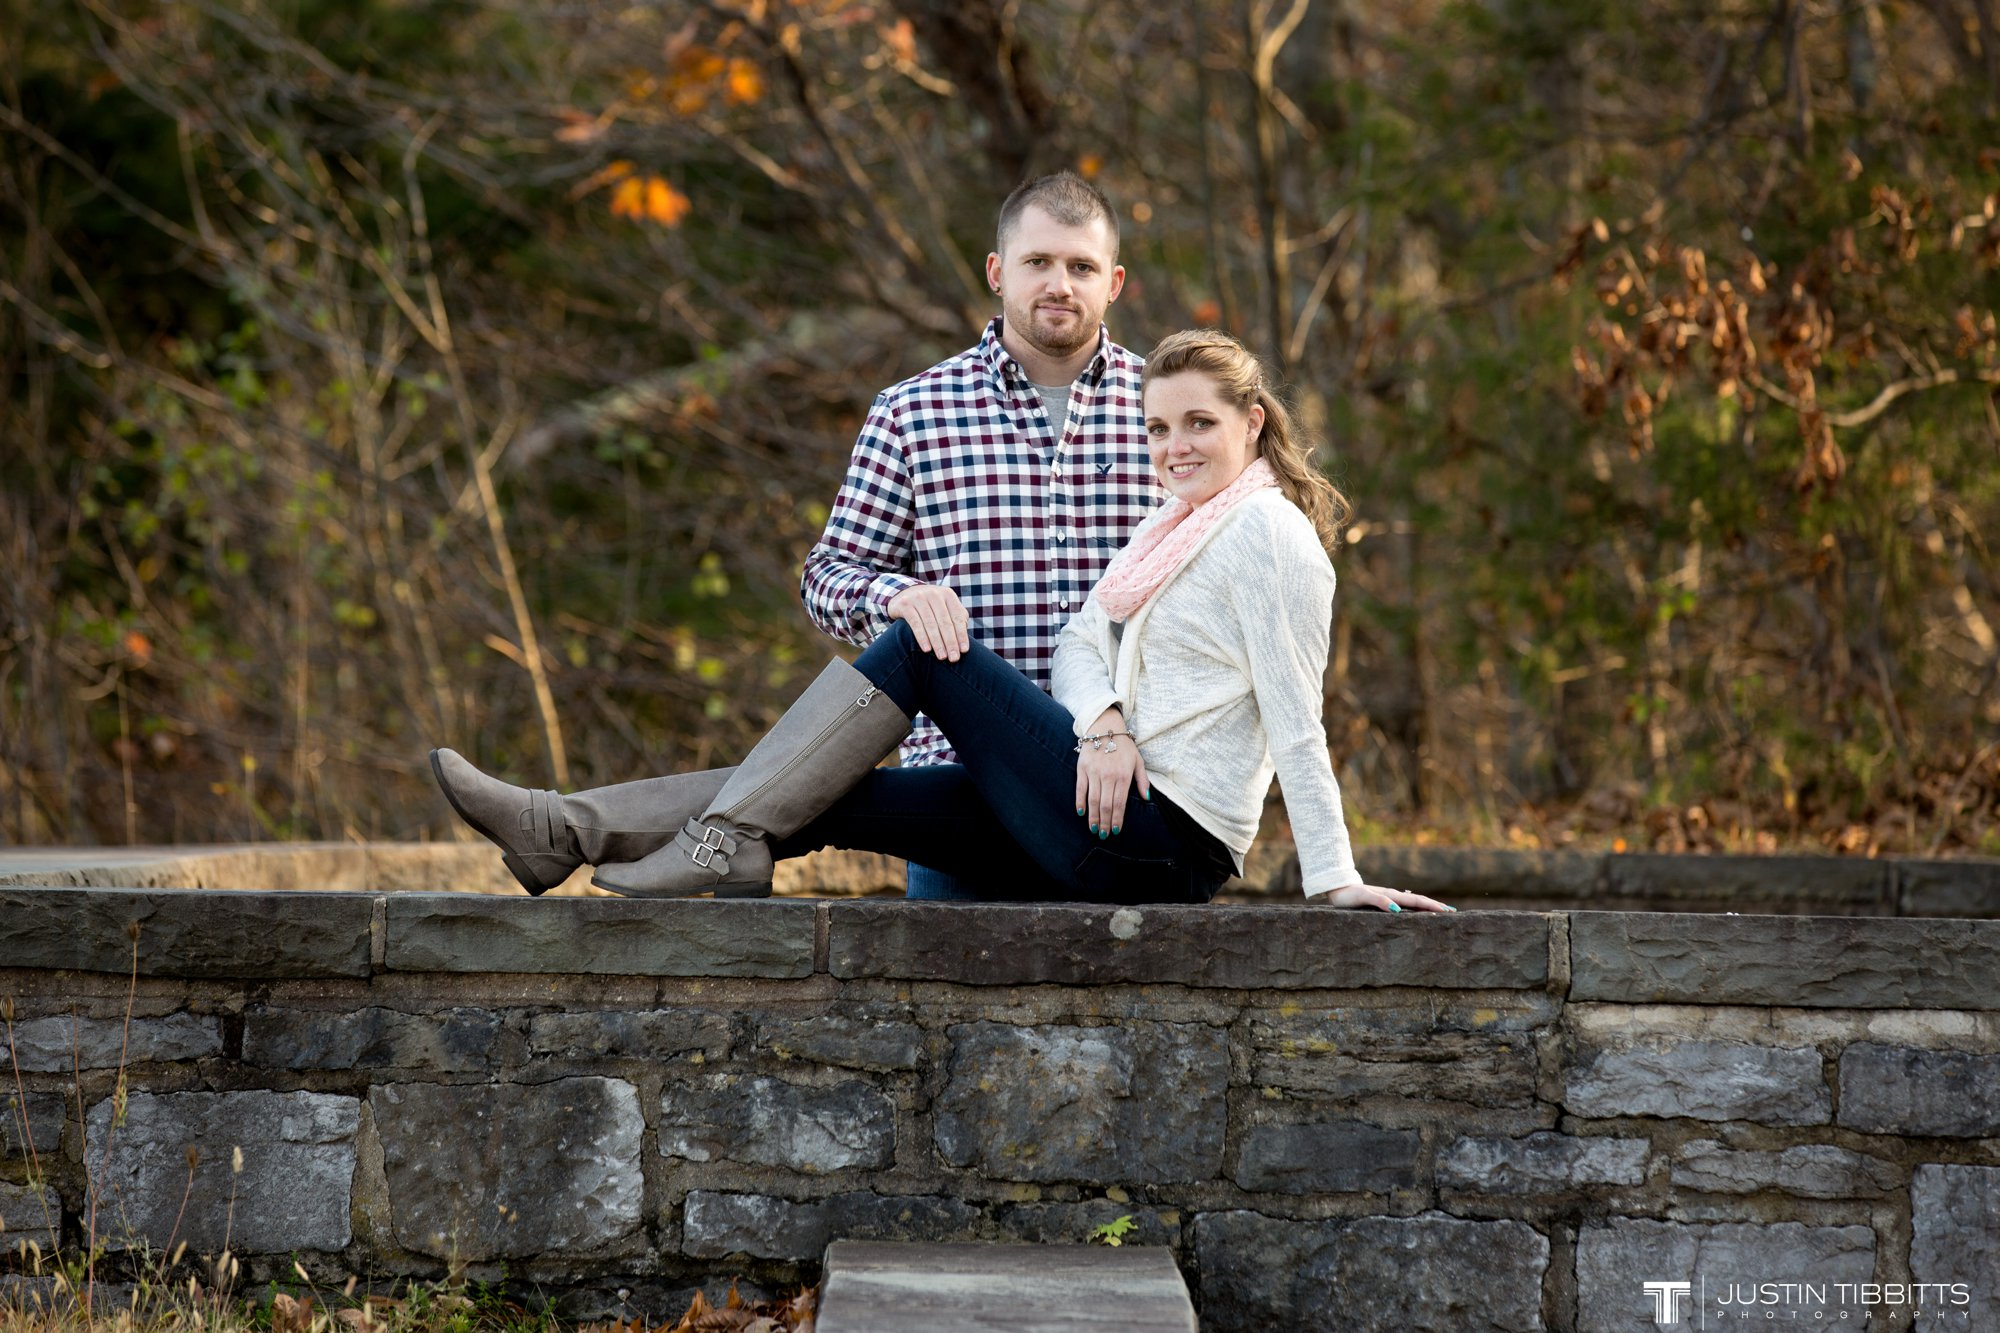 Justin Tibbitts Photography Ashlee and Steves Thatcher Park, New York Engagement Shoot-85